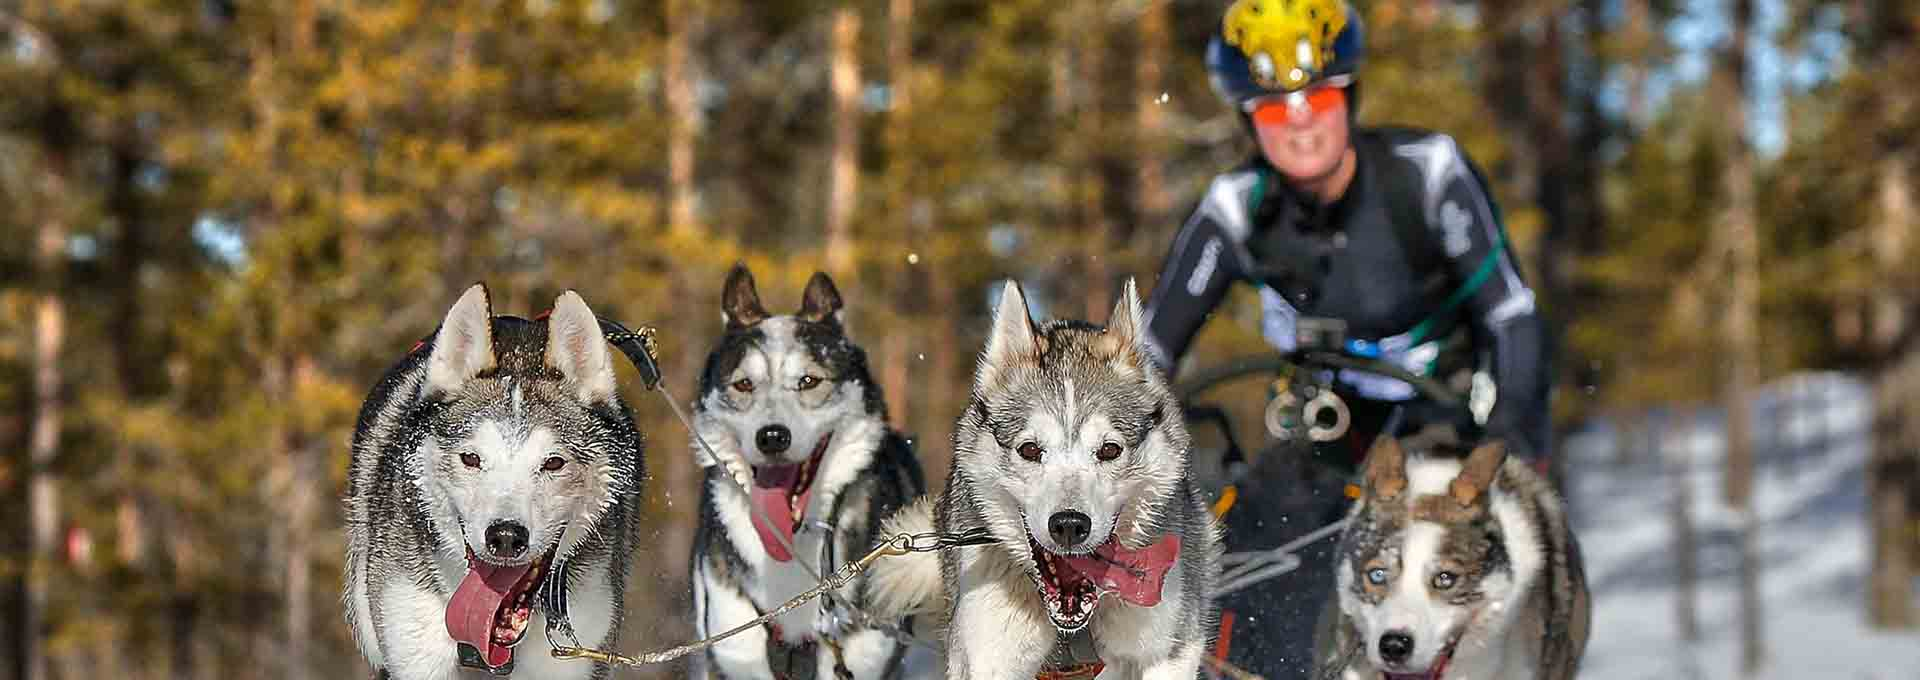 sleddog and skier